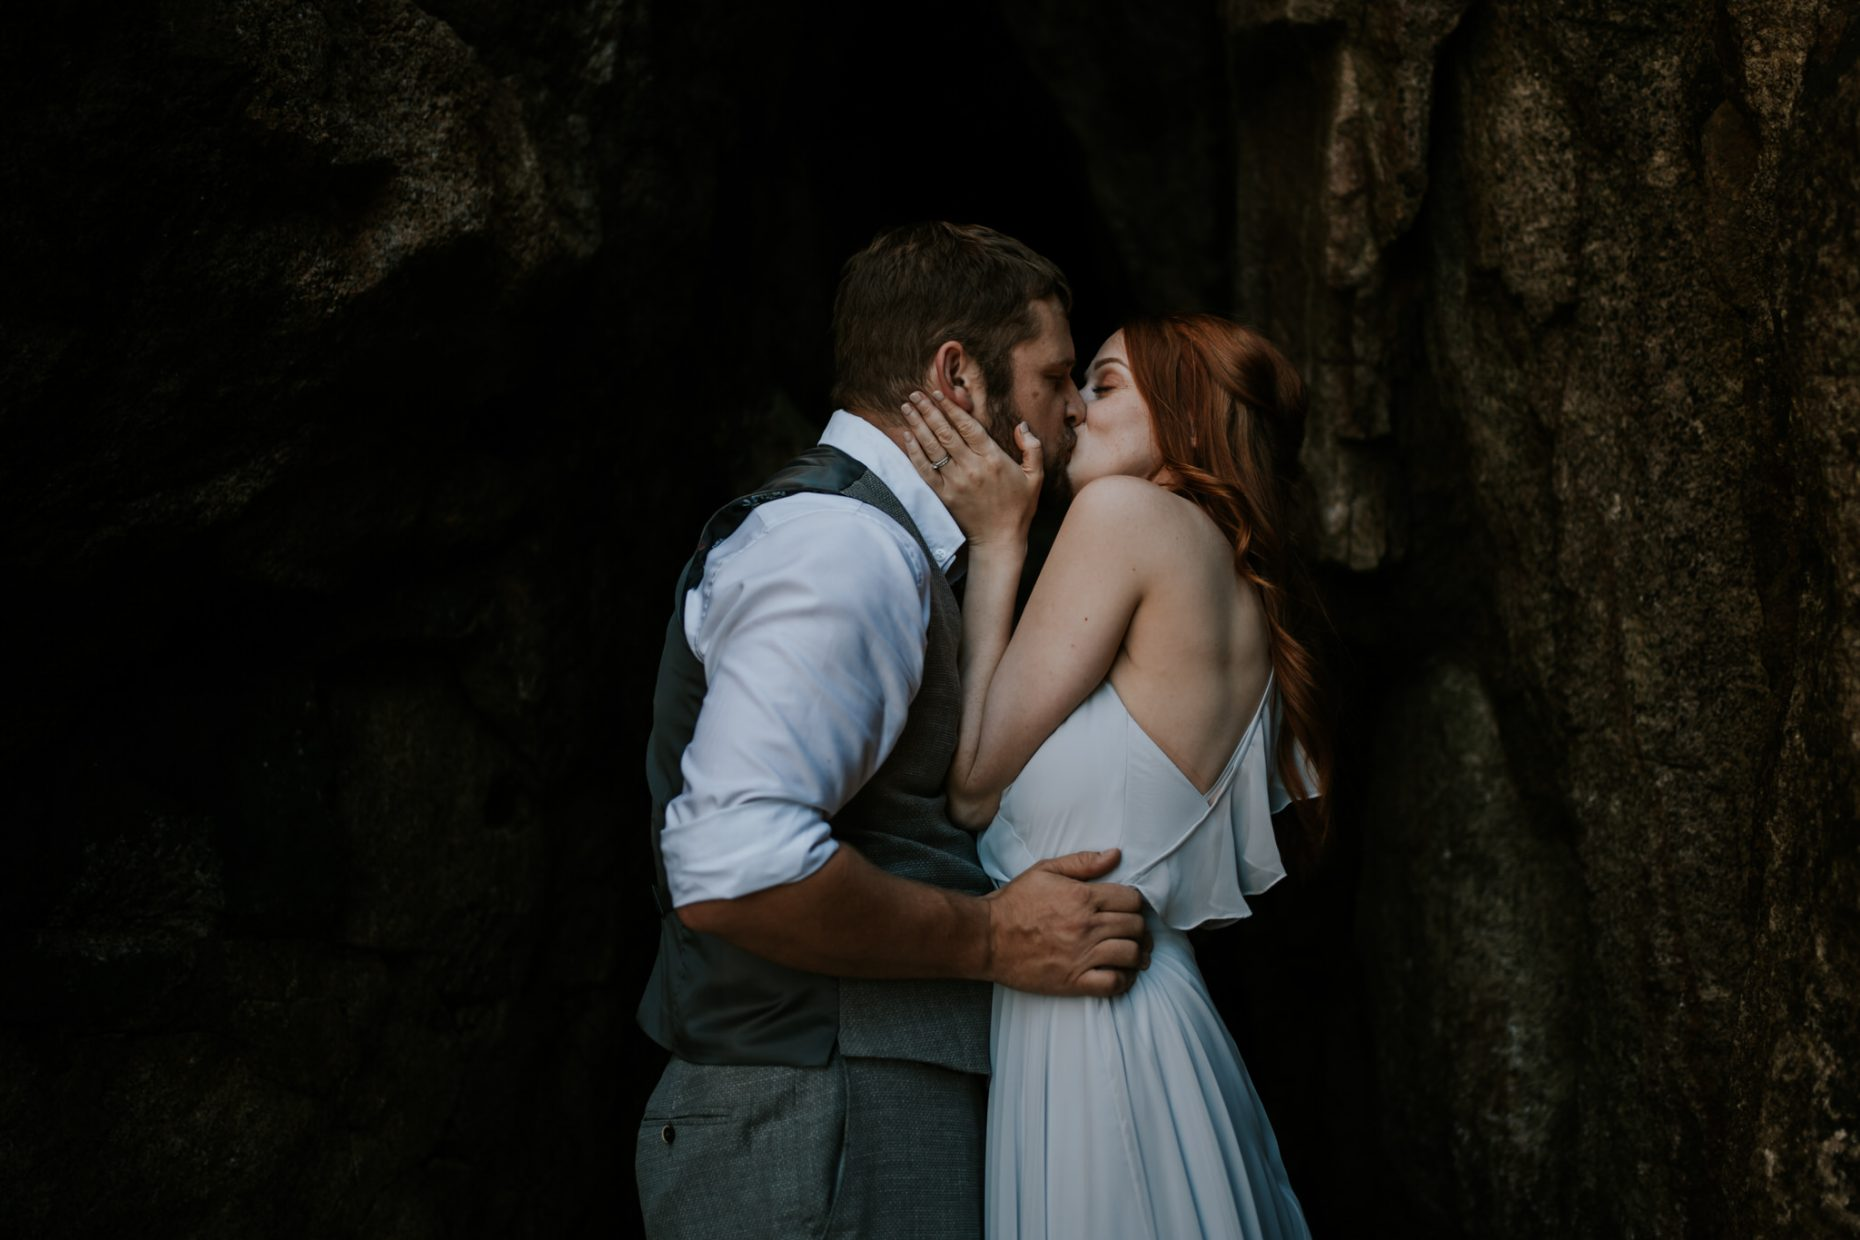 After having an elopement package in cornwall the bride kisses groom passionately in a sea cave, her hand grab his face as he pulls her close with his hands tightly around her waist